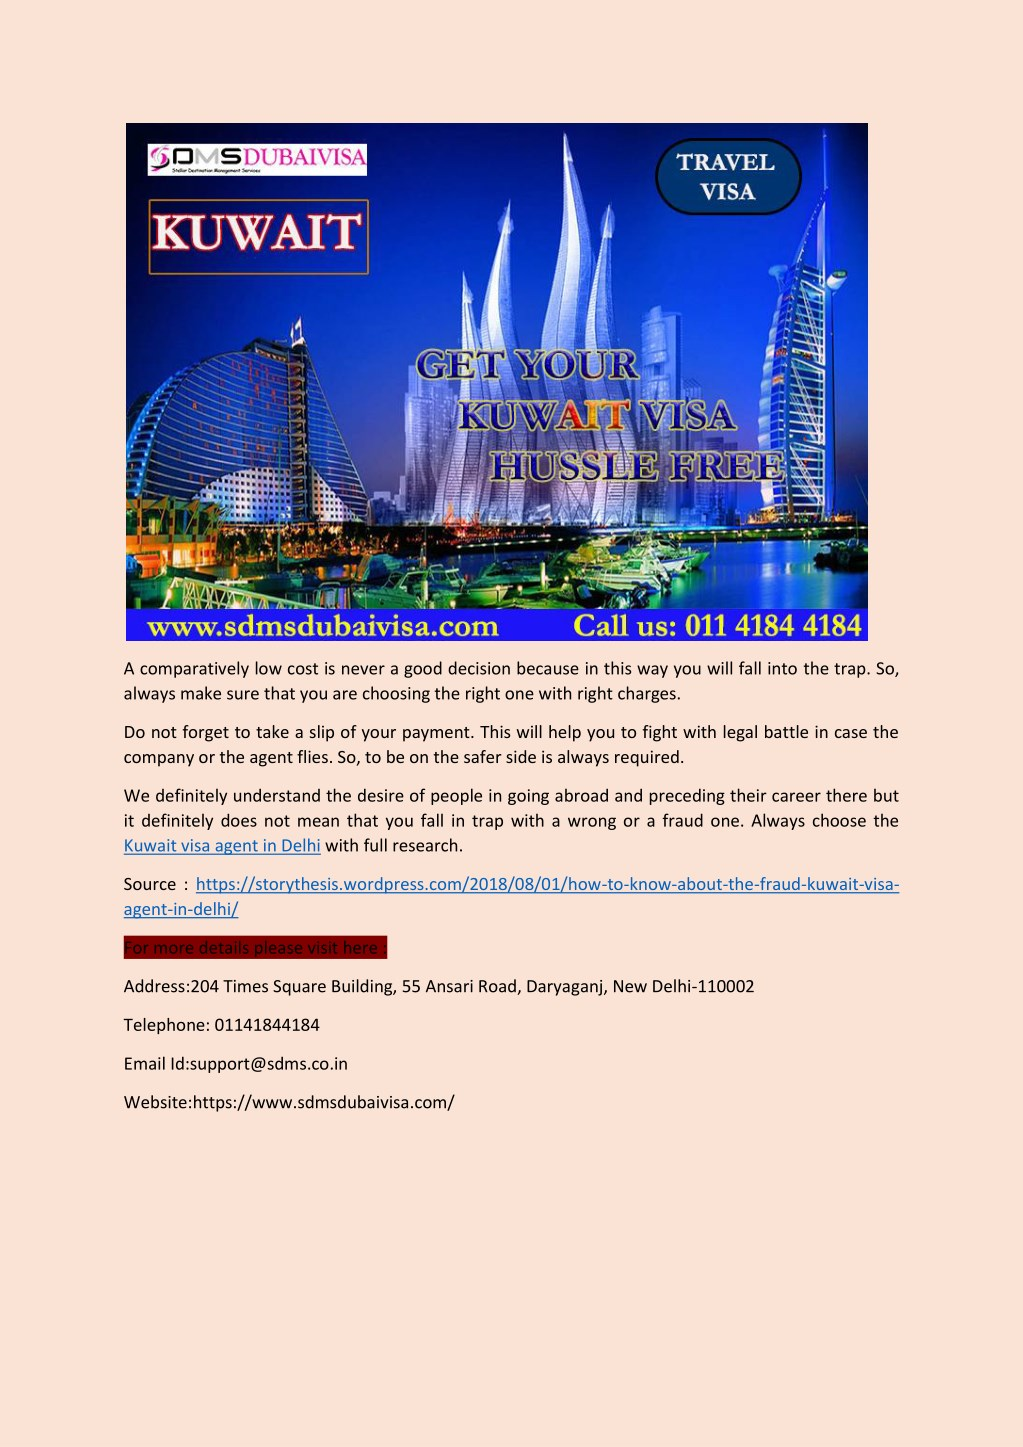 PPT - How to Know About the Fraud Kuwait Visa Agent in Delhi